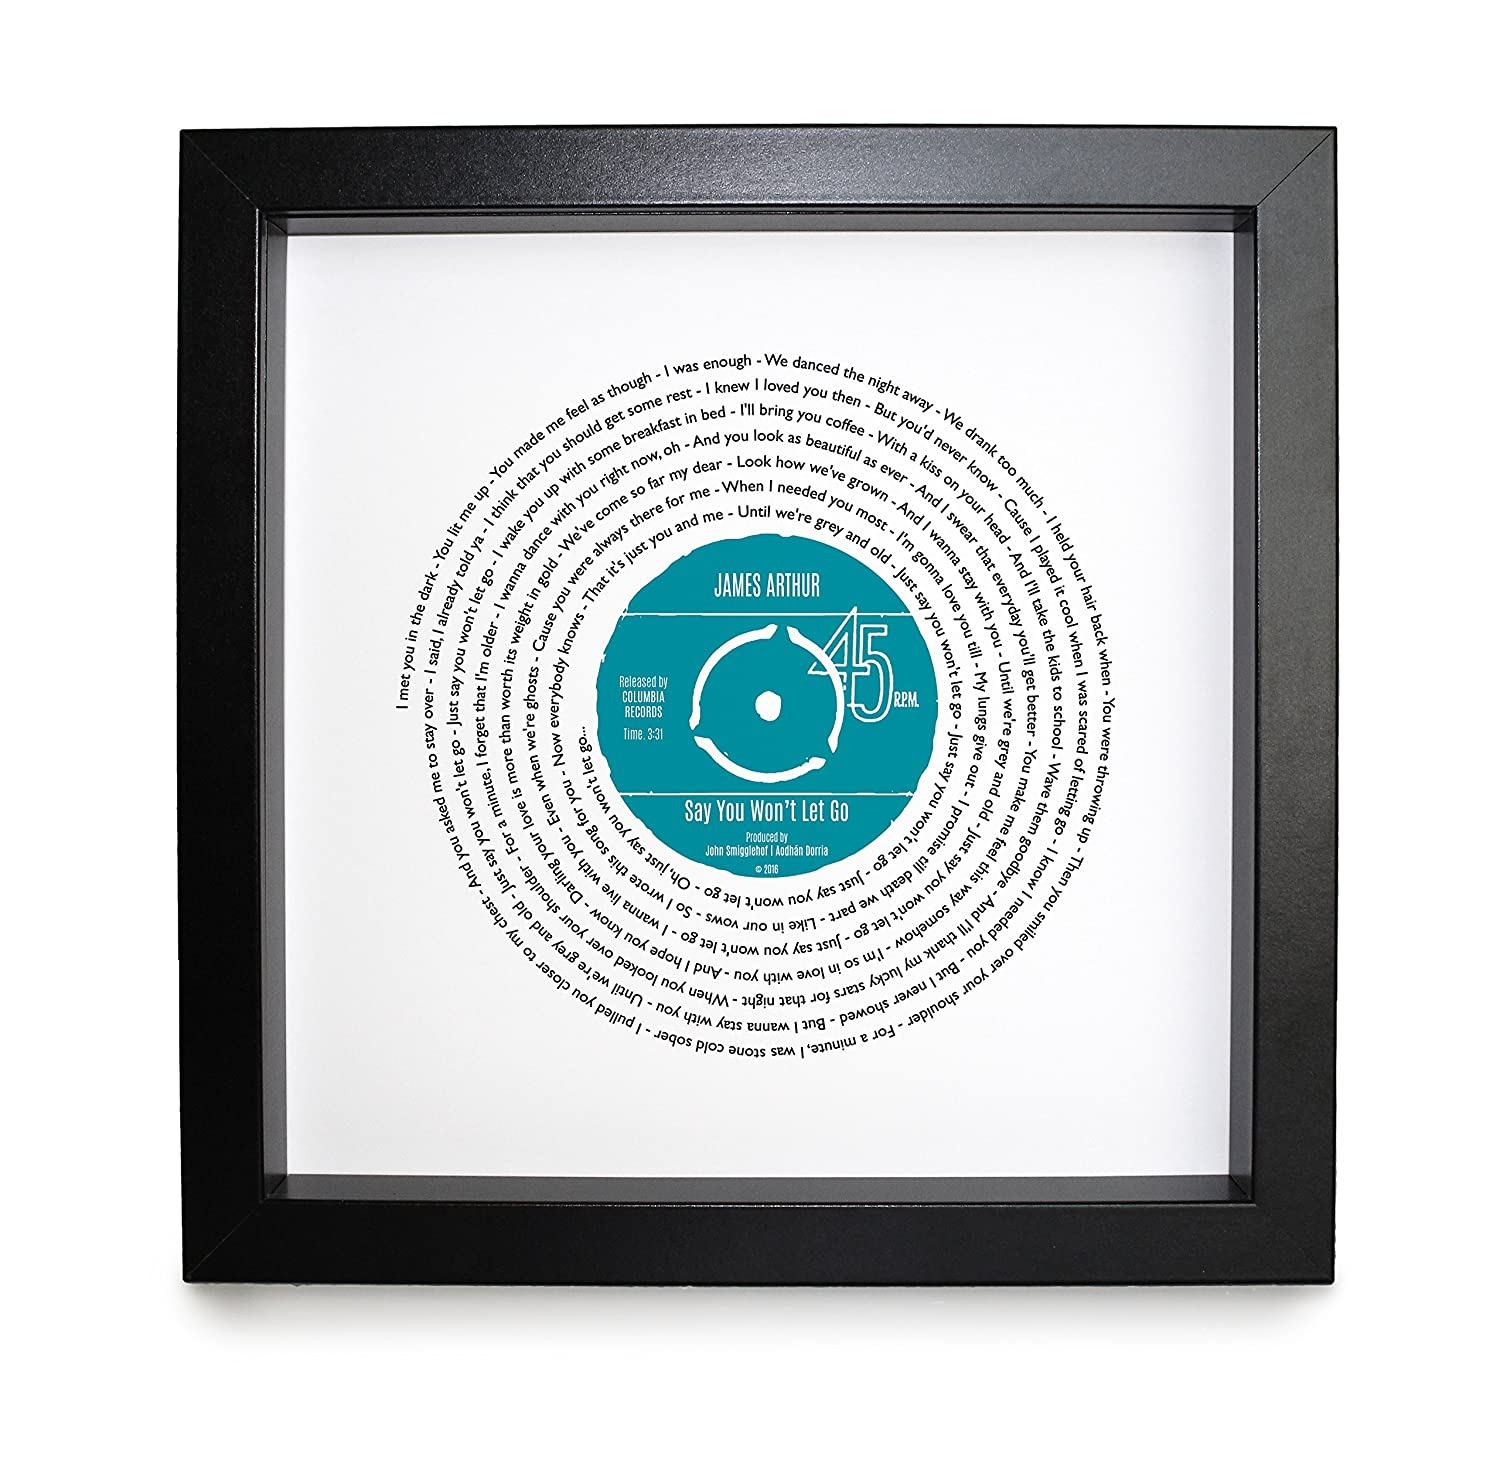 James Arthur, Say You Won't Let Go, Vinyl Record Print | PERSONALISED SONG  | Vinyl Record Song Words Print | 23 x 23 cm Boxed Frame